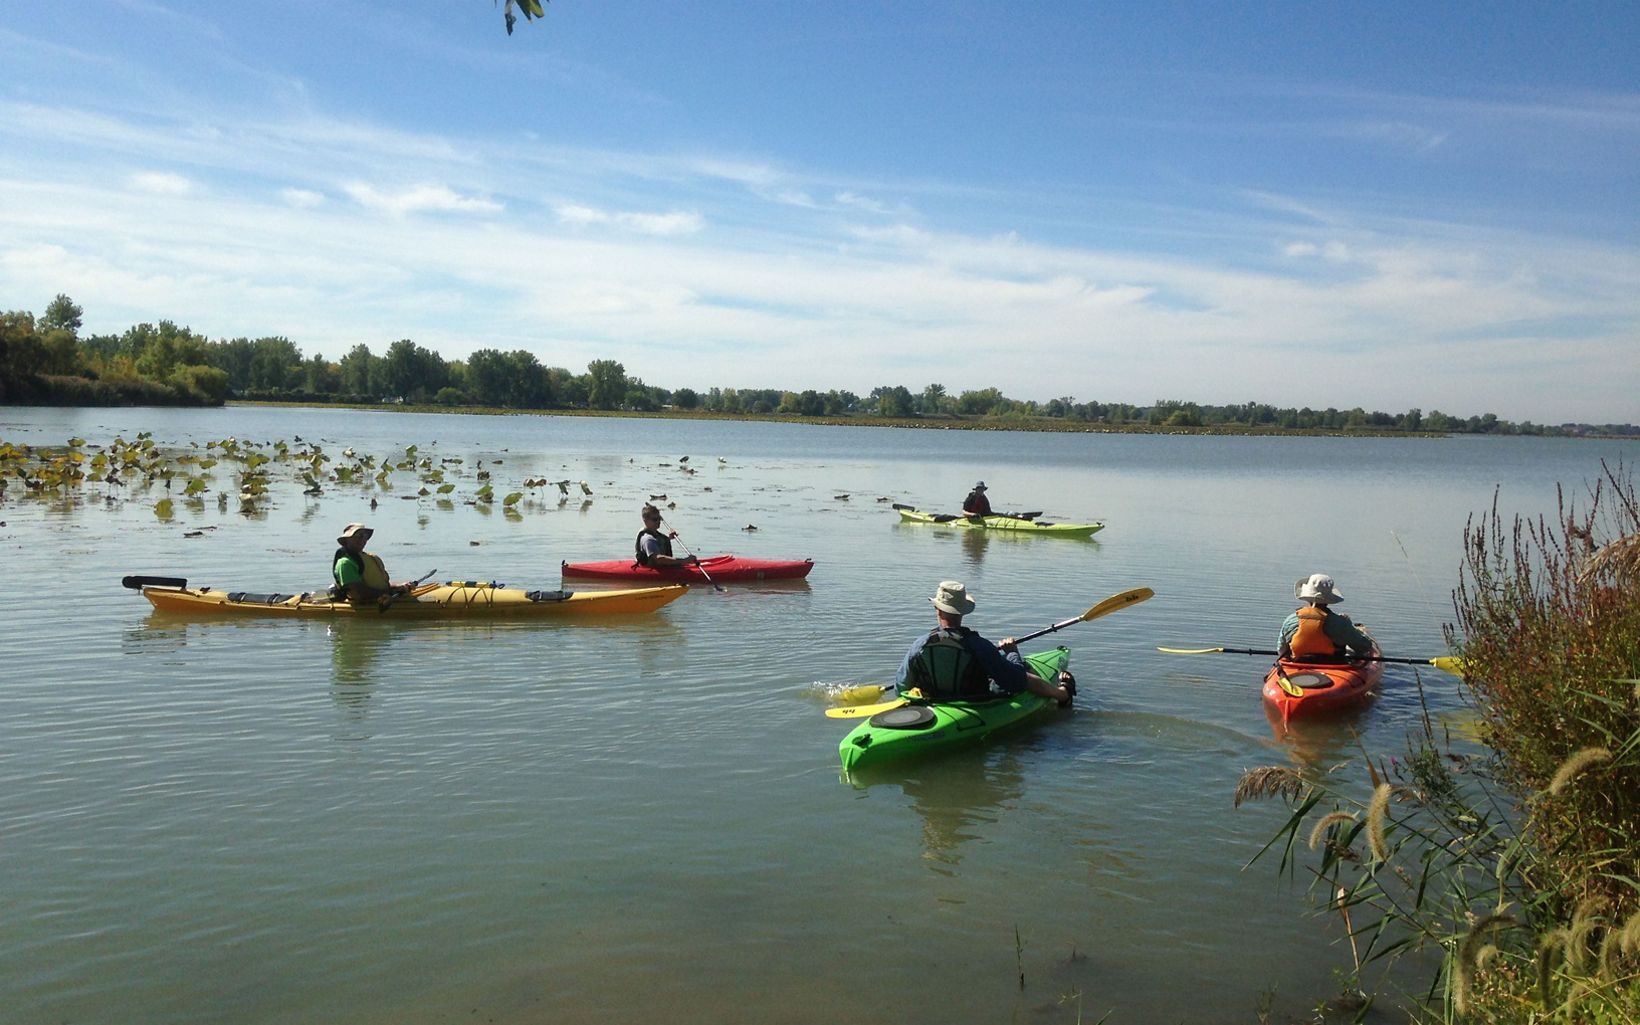 Kayakers taking advantage of the put-in located at the preserve.